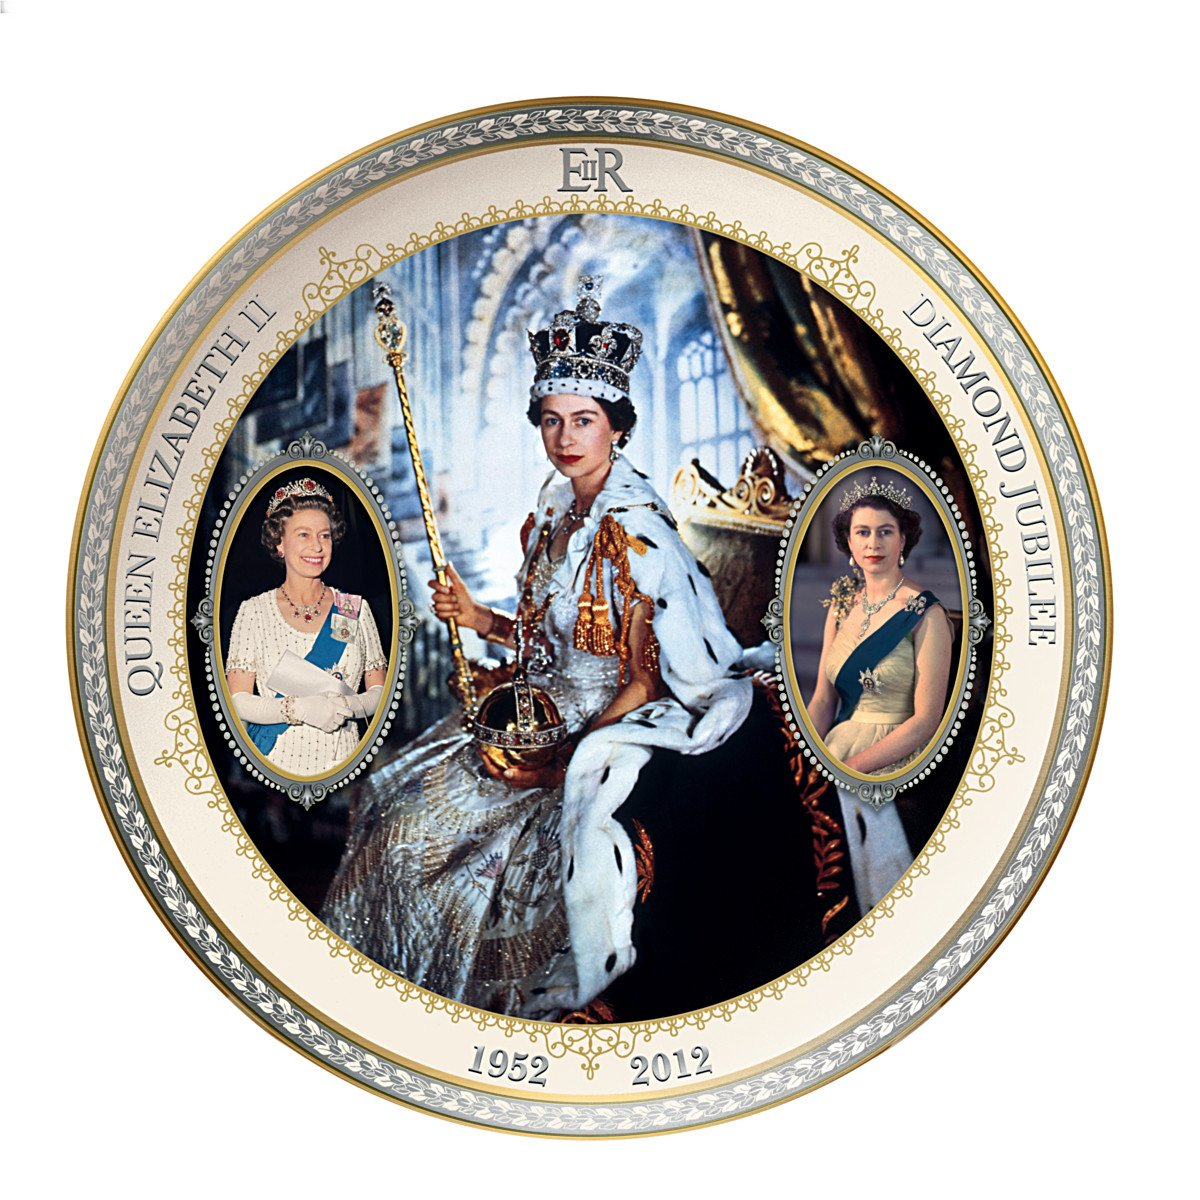 Collector Plate: Queen Elizabeth II Diamond Jubilee by The Bradford Exchange